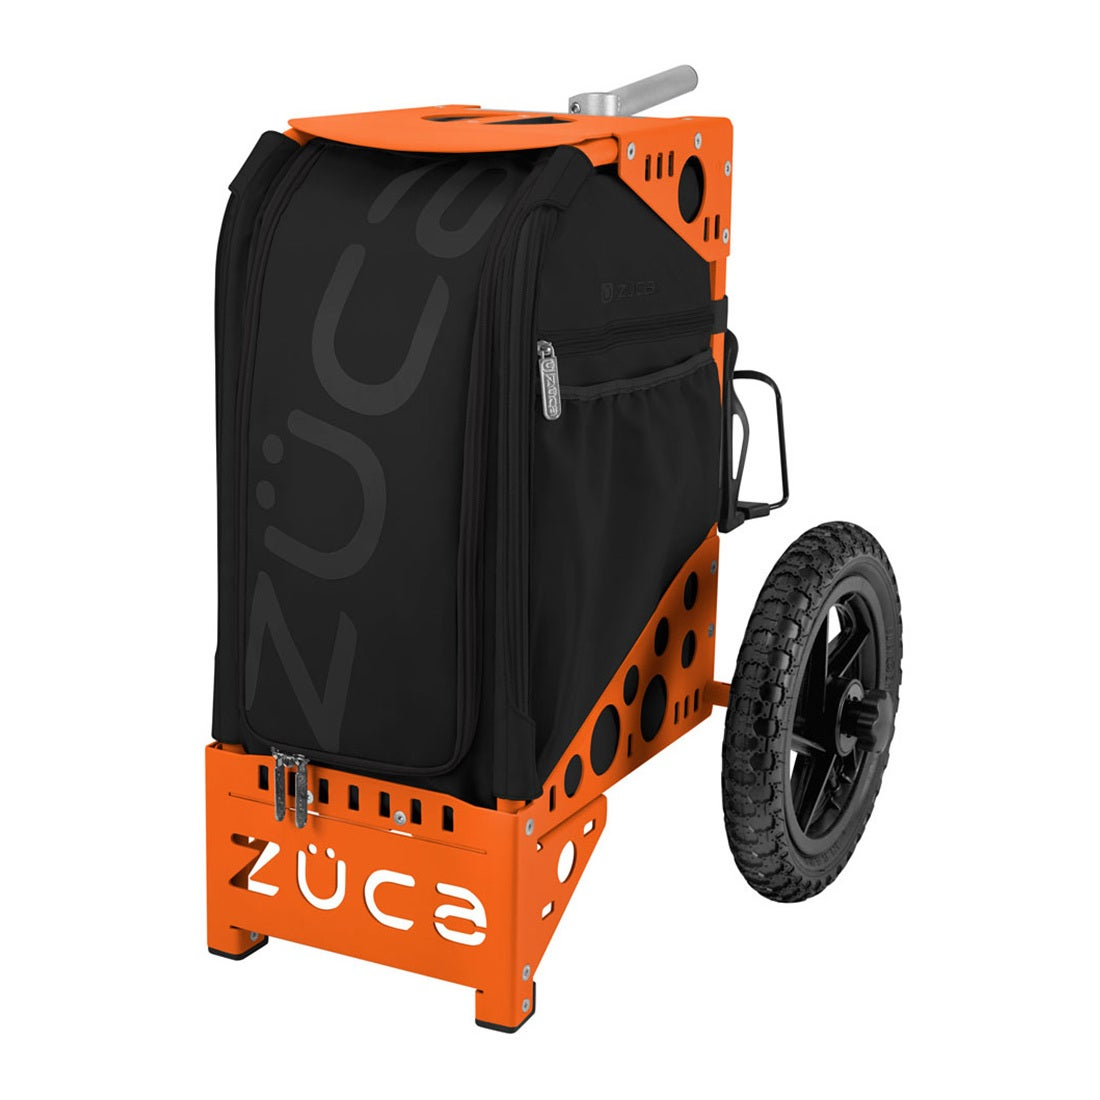 【SAC'S BAR】ズーカ ZUCA キャリーケース 1310 ALL-TERRAIN Covert/Orange メンズ